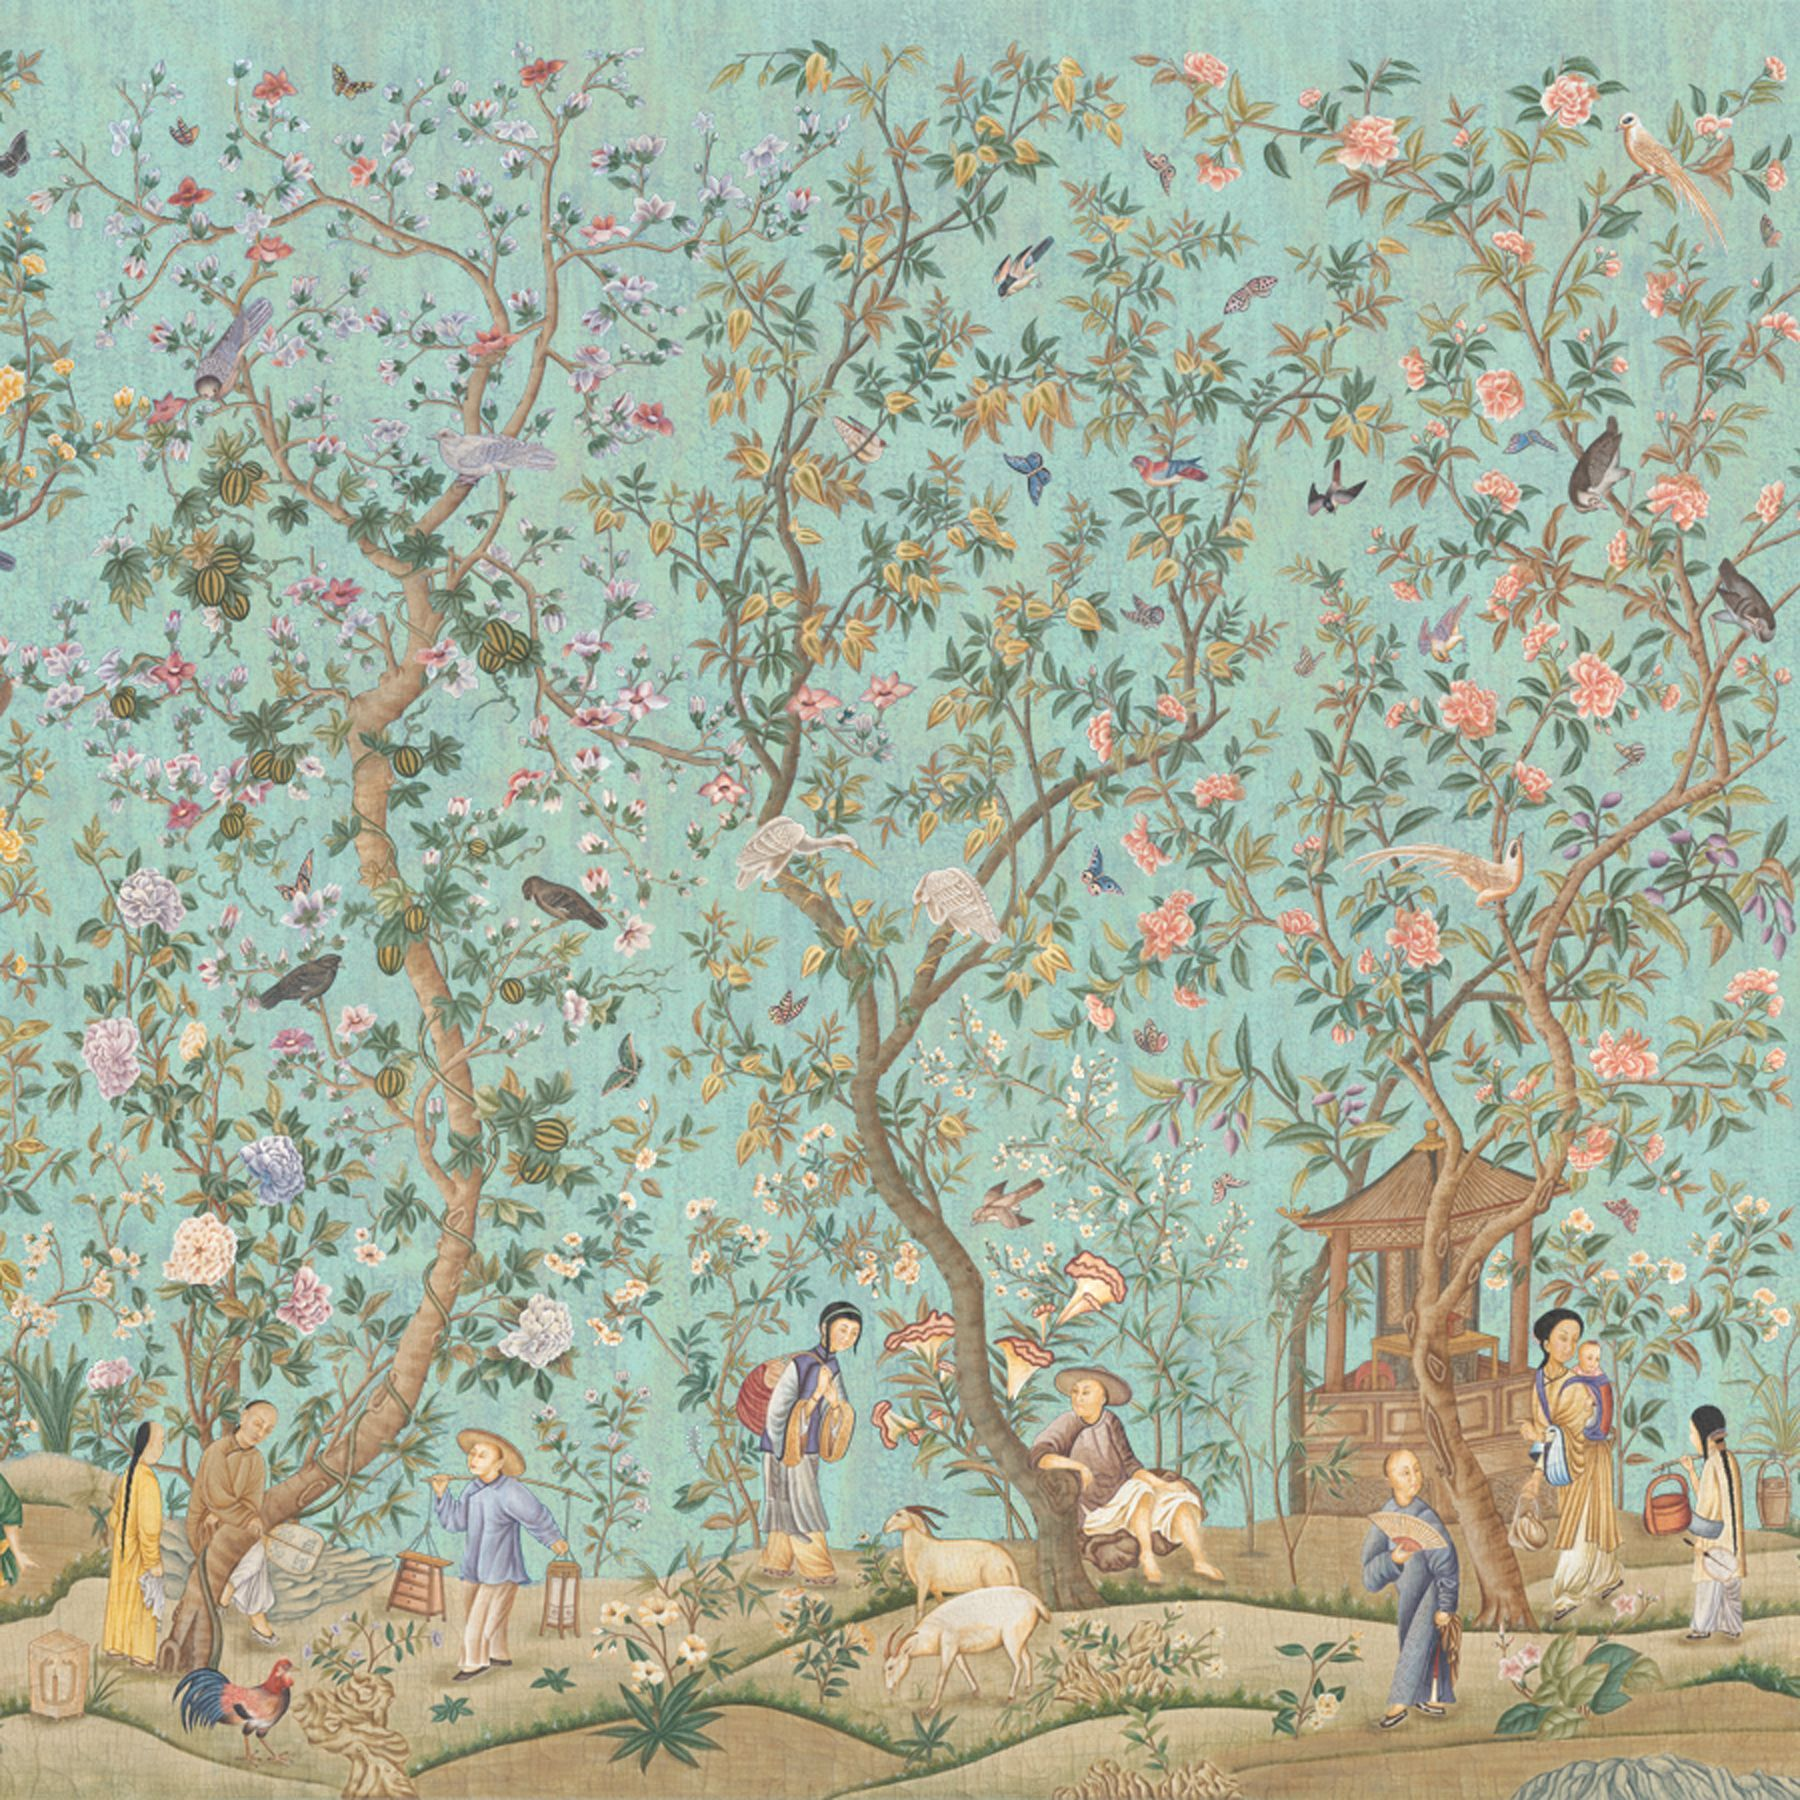 Wallpaper panel, Qialong Garden , Crackled Turquoise by Iksel for Schumacher